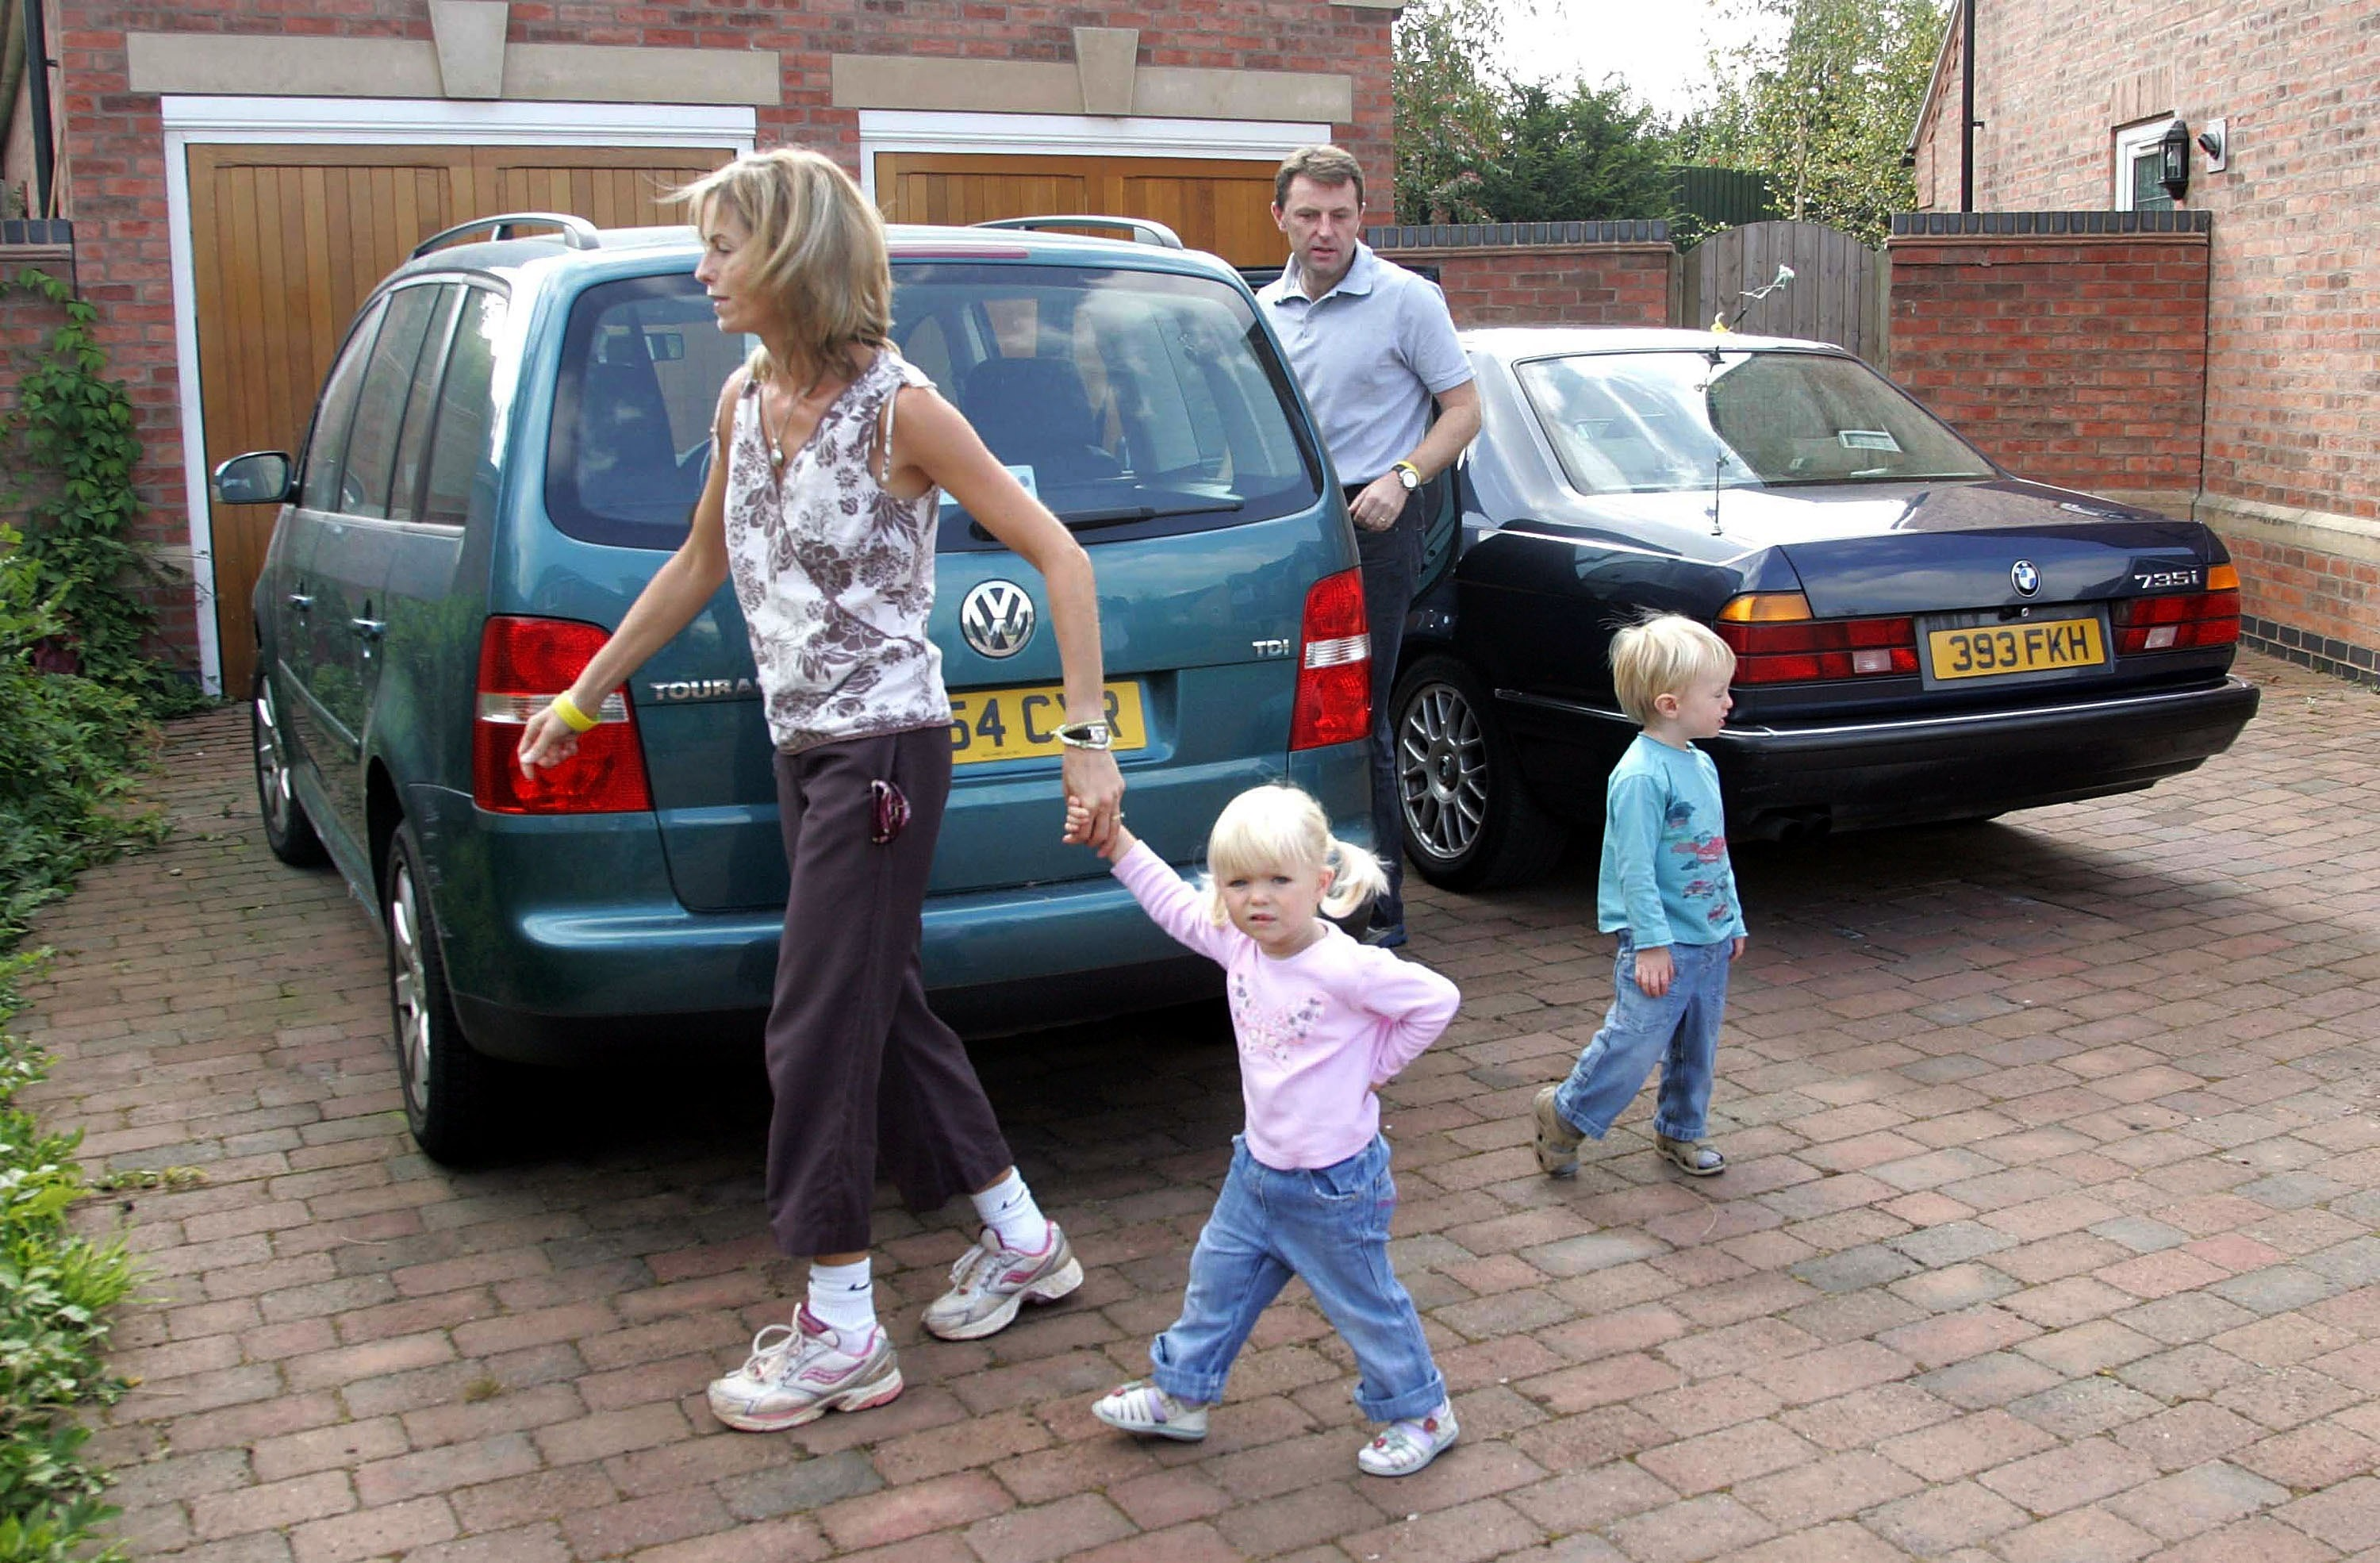 Kate and Gerry McCann leave their home today to take their children Amelie and Sean to a local play park on September 12, 2007 in Rothley, England. Portugal's public prosecutor is due to review police papers detailing the Madeleine McCann inquiry.